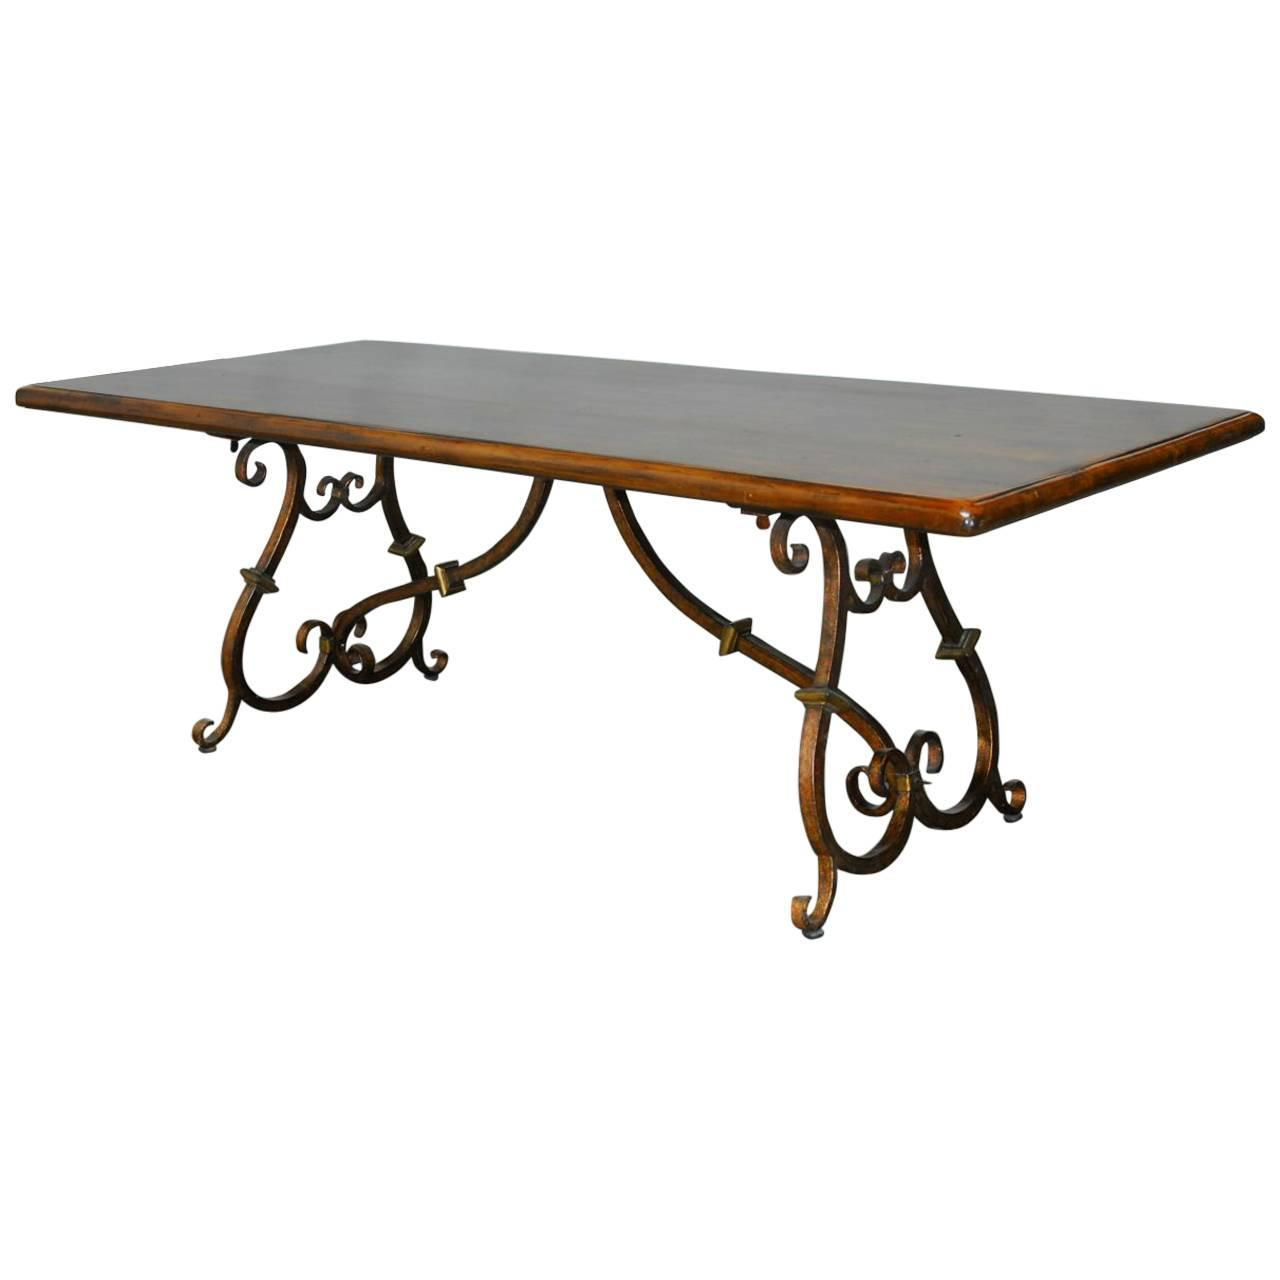 Spanish Colonial Trestle Table With Wrought Iron Scrolled